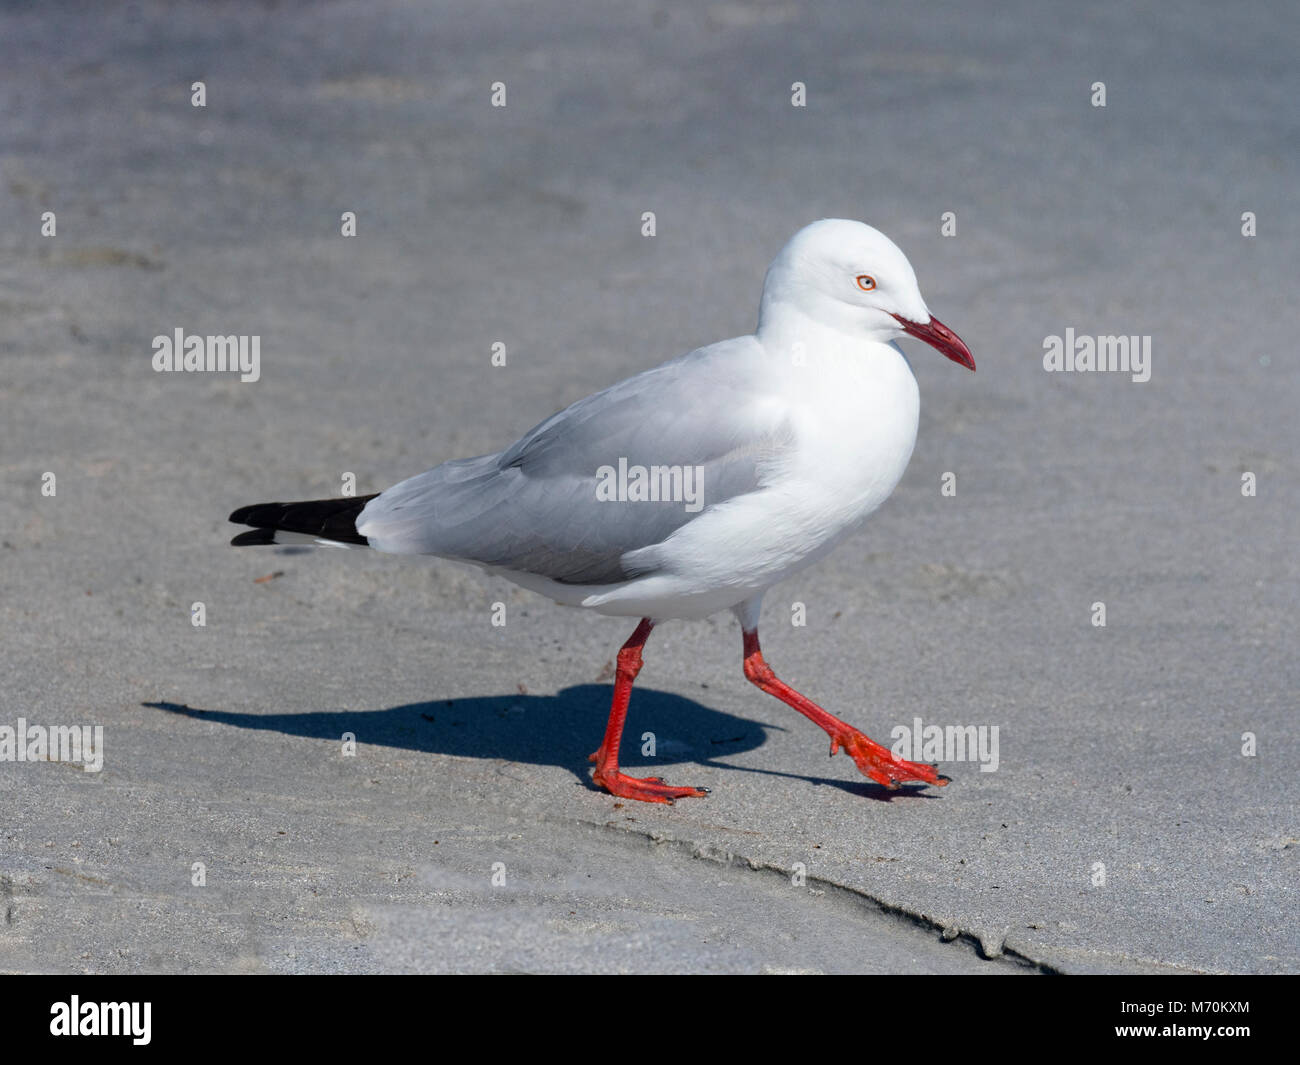 Silver gull Chroicocephalus novaehollandiae on beach - Stock Image